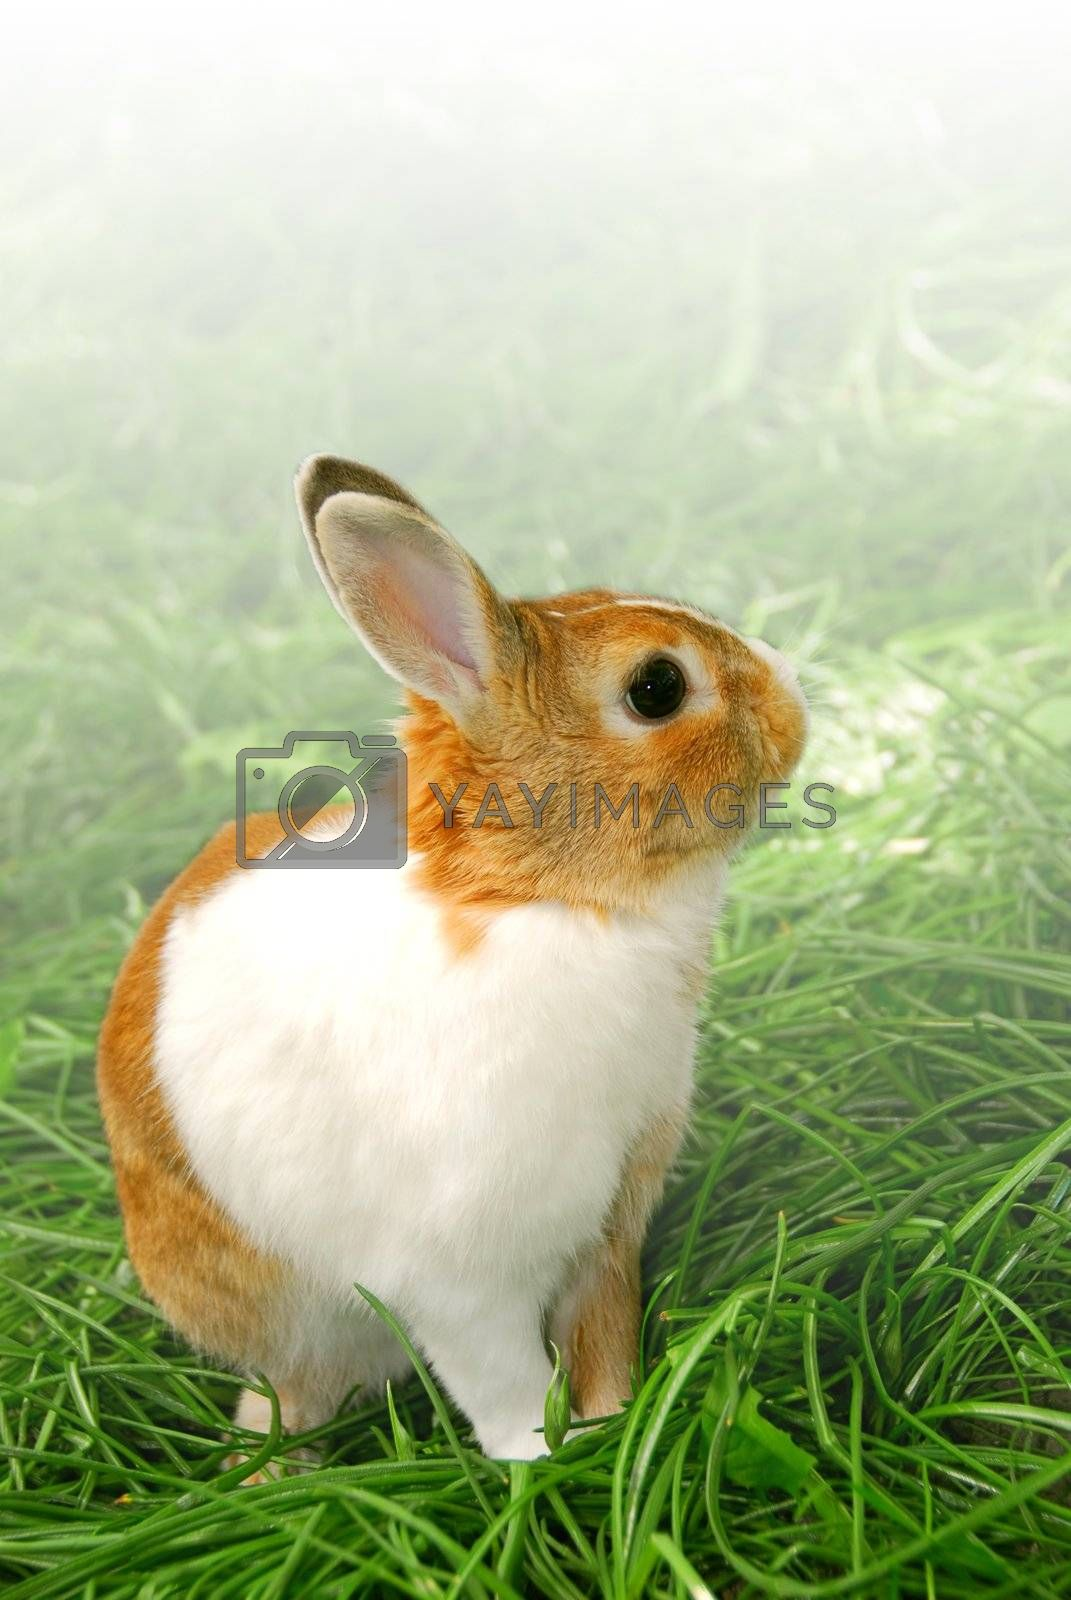 Cute easter bunny sitting on green grass outside, faded white background